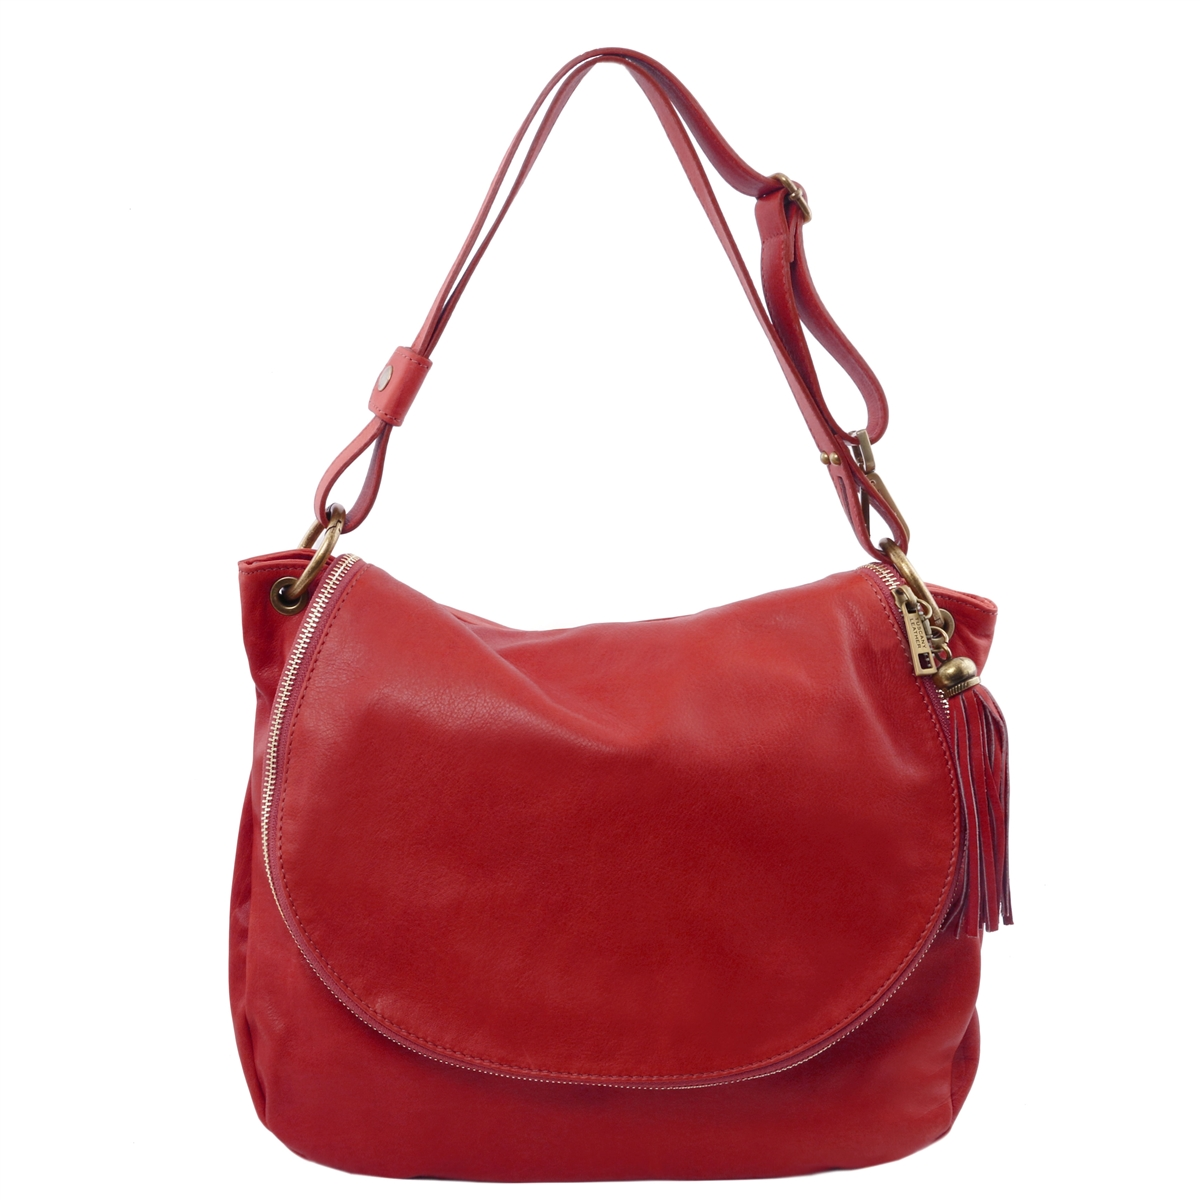 ca458e7e3151 Tuscany Leather TL141110 Shoulder Bag - Red